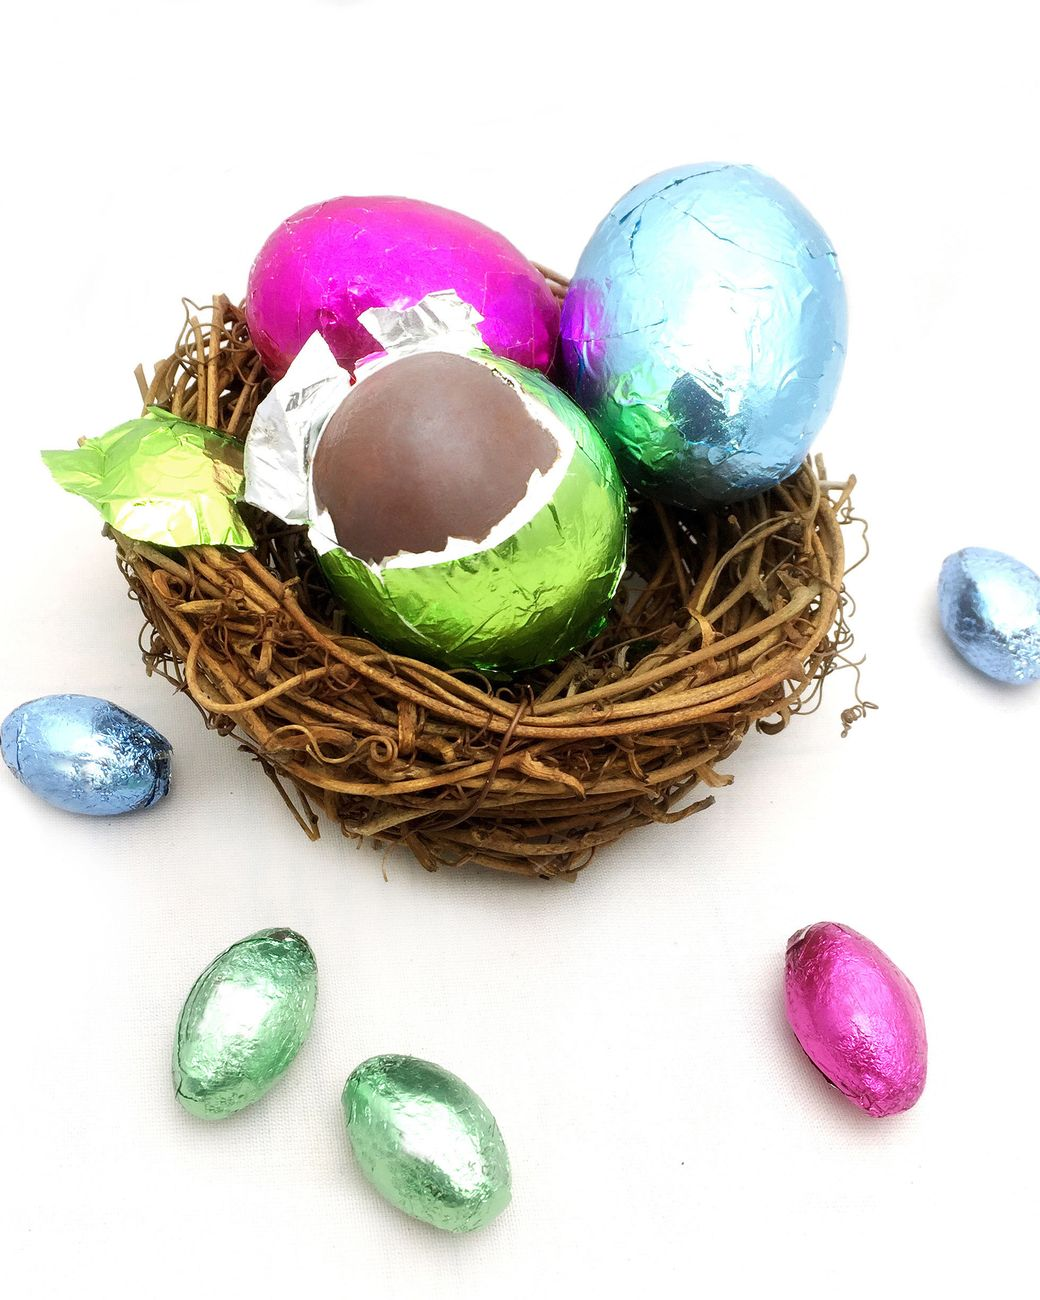 Peel away the colorful tinfoil and you'll find a sweet surprise! This idea for chocolate Easter eggs wrapped in foil works like magic: ordinary eggs are filled with solid chocolate.